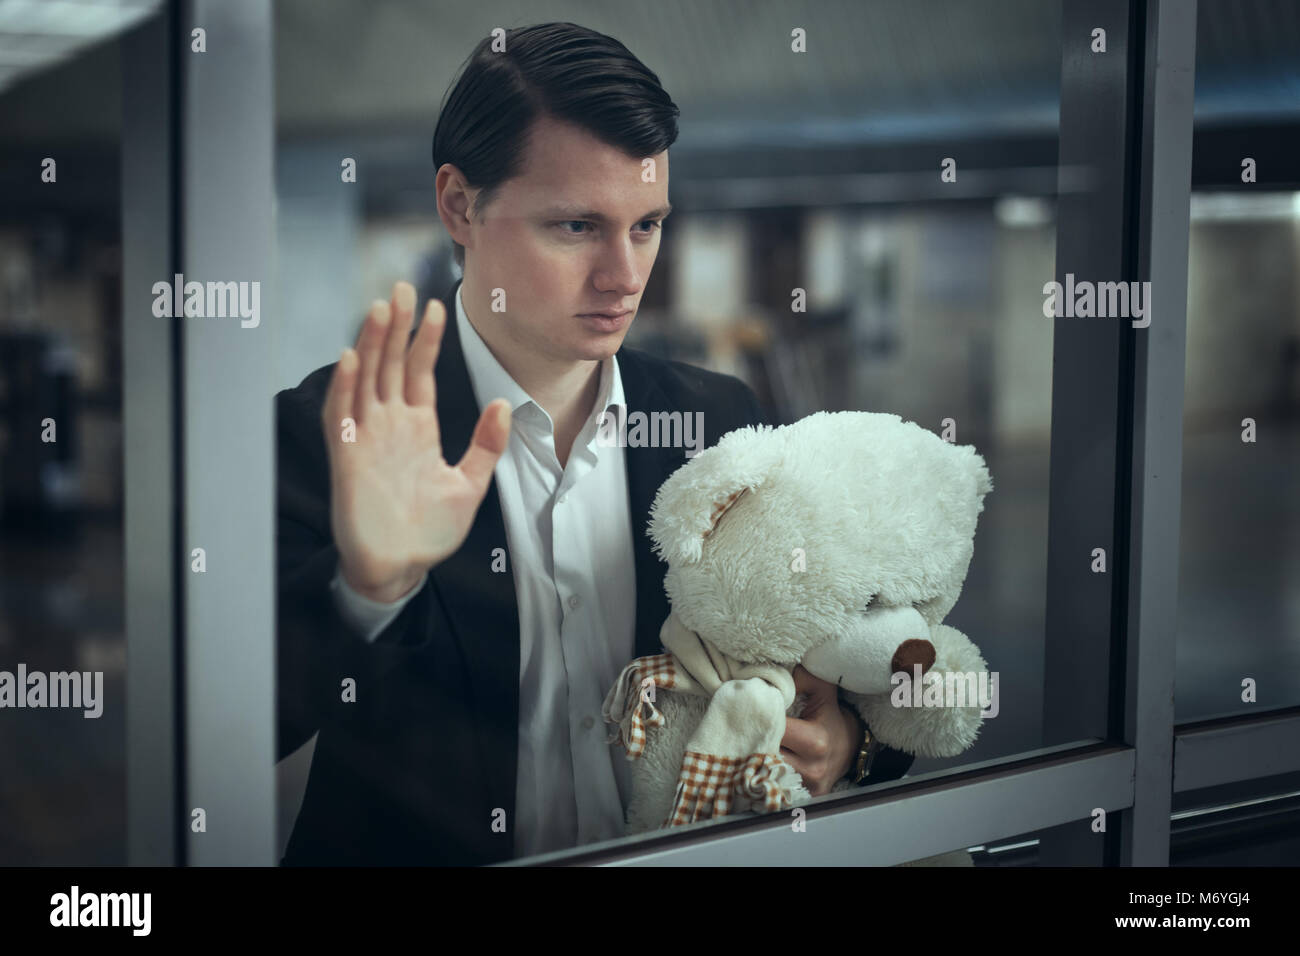 Young man looks out the window and waits for a meeting. He has a teddy bear in his hands Stock Photo